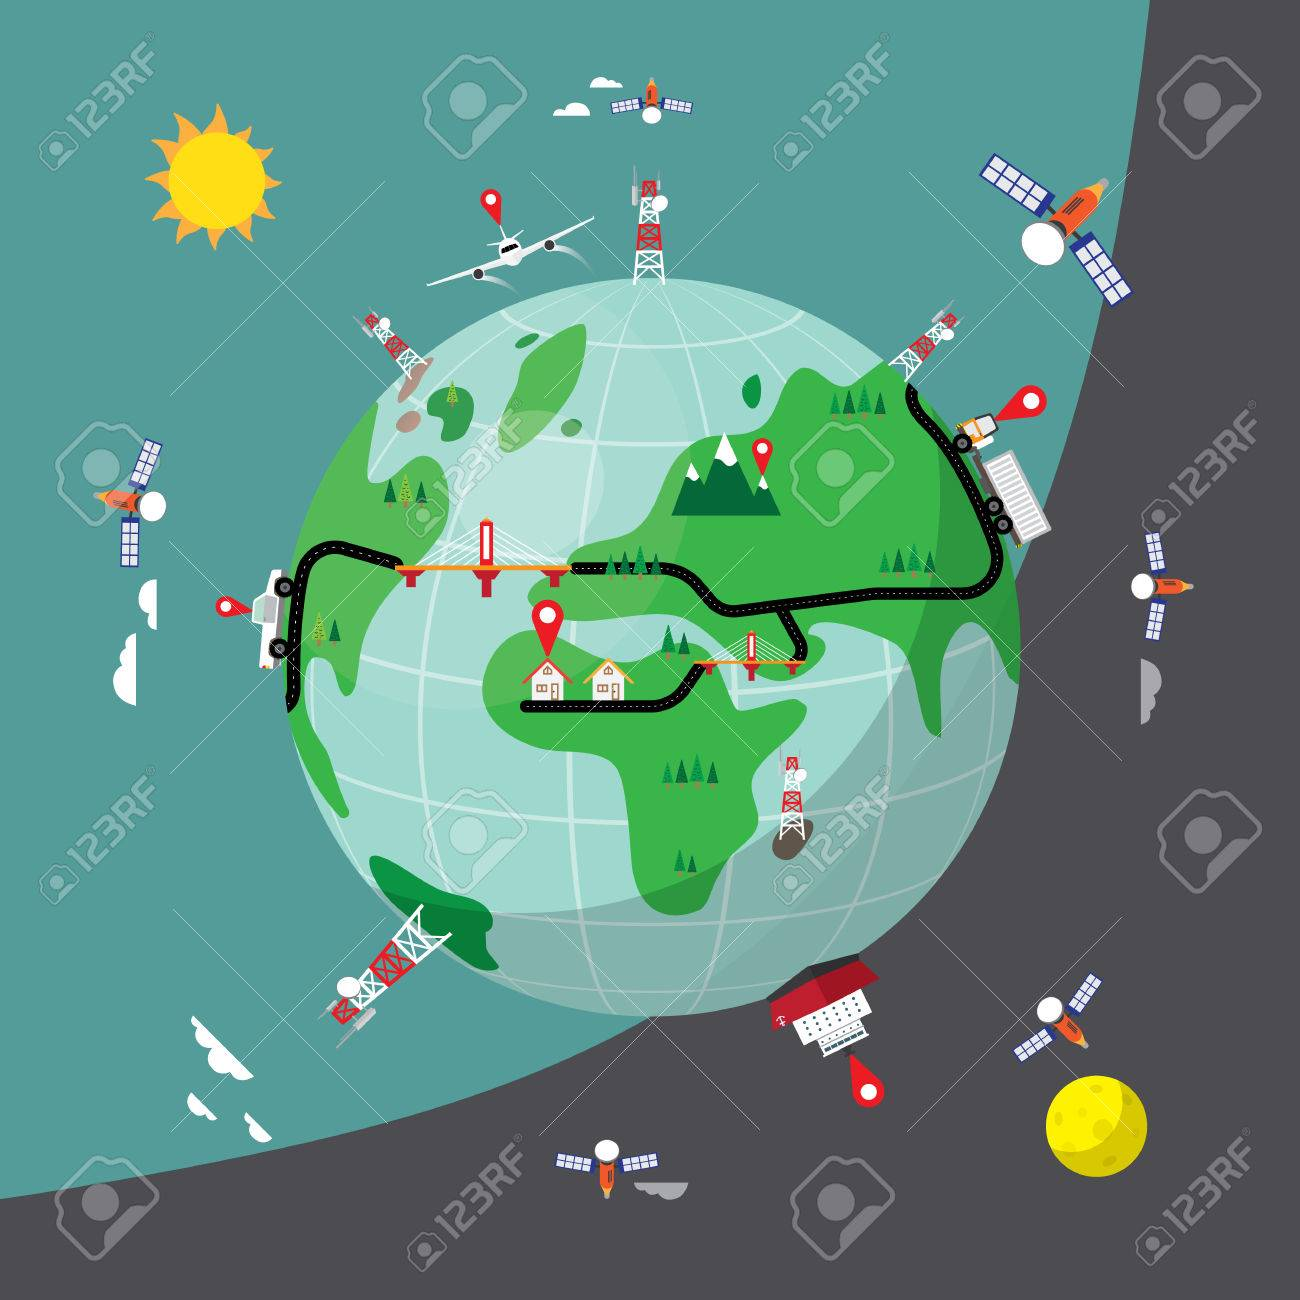 World Map Gps.Gps Tracking In Simple World Map Royalty Free Cliparts Vectors And